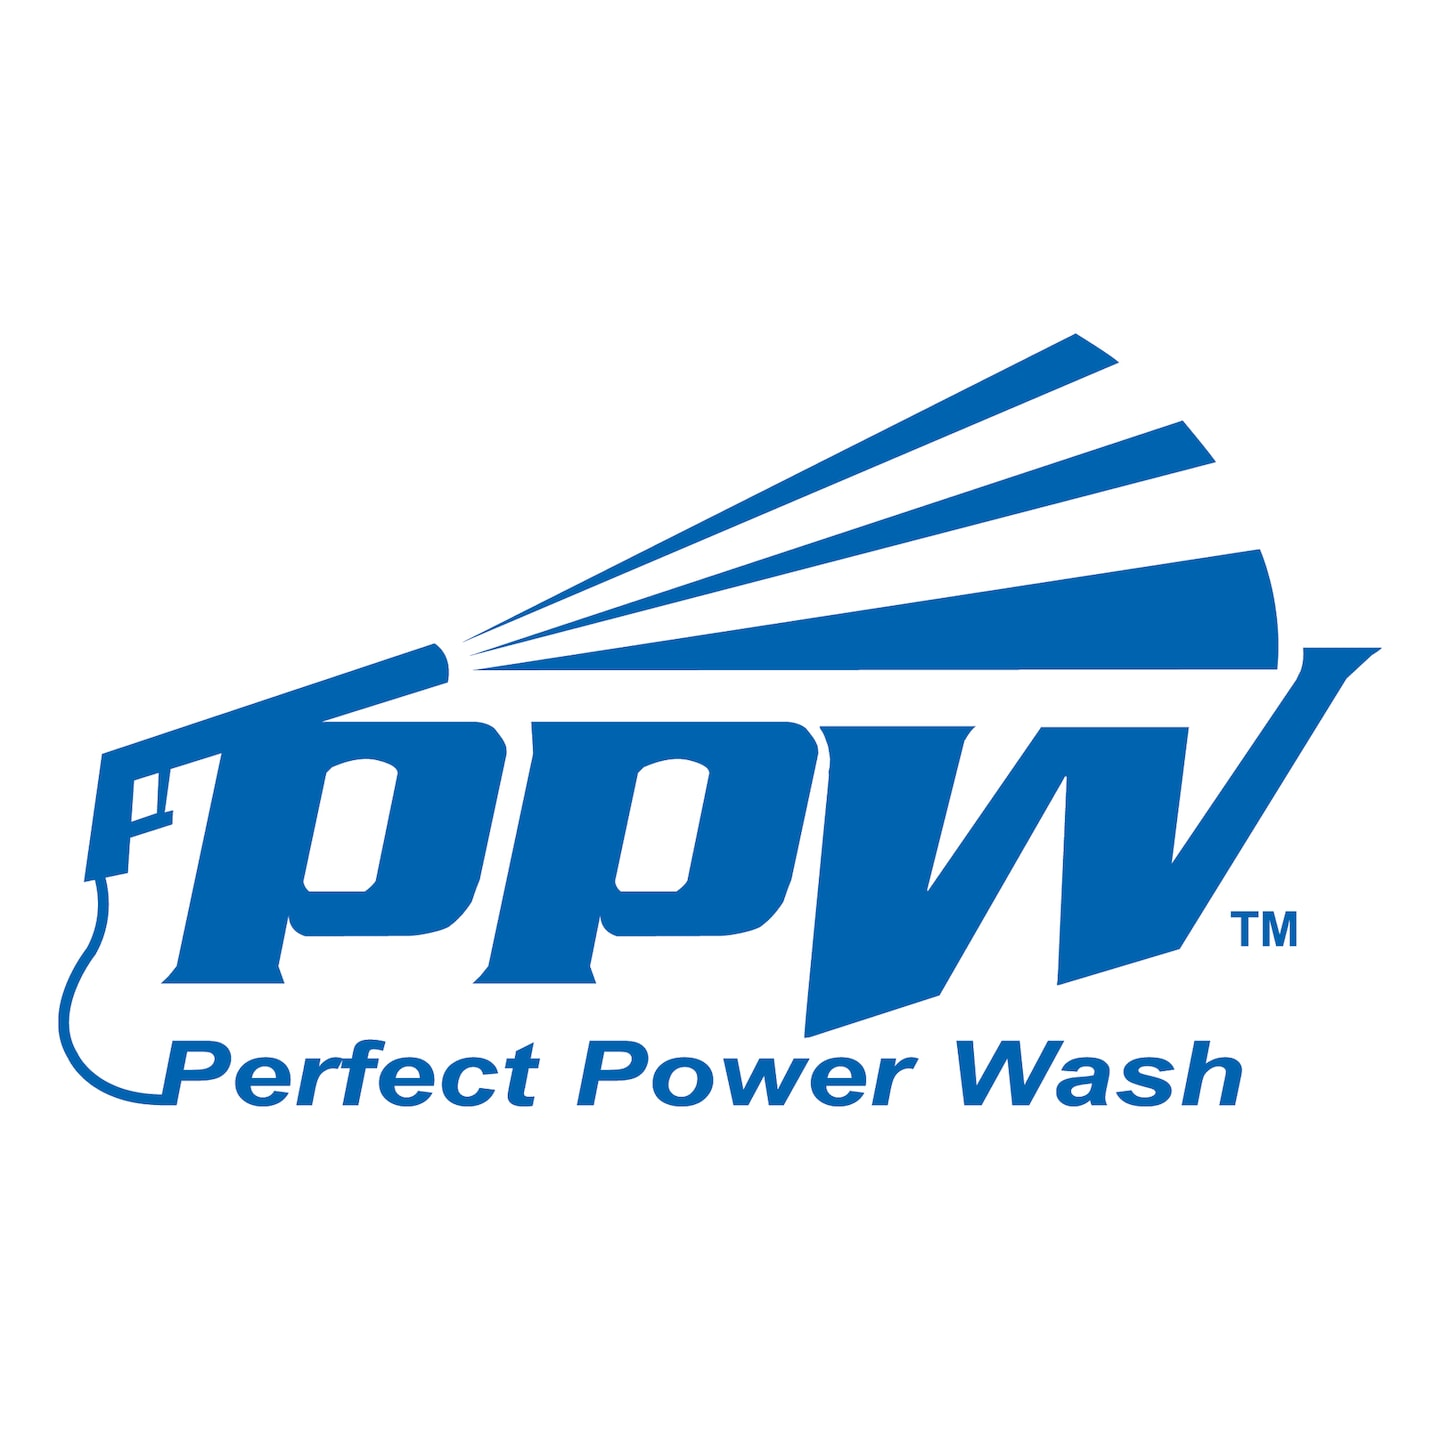 Perfect Power Wash logo